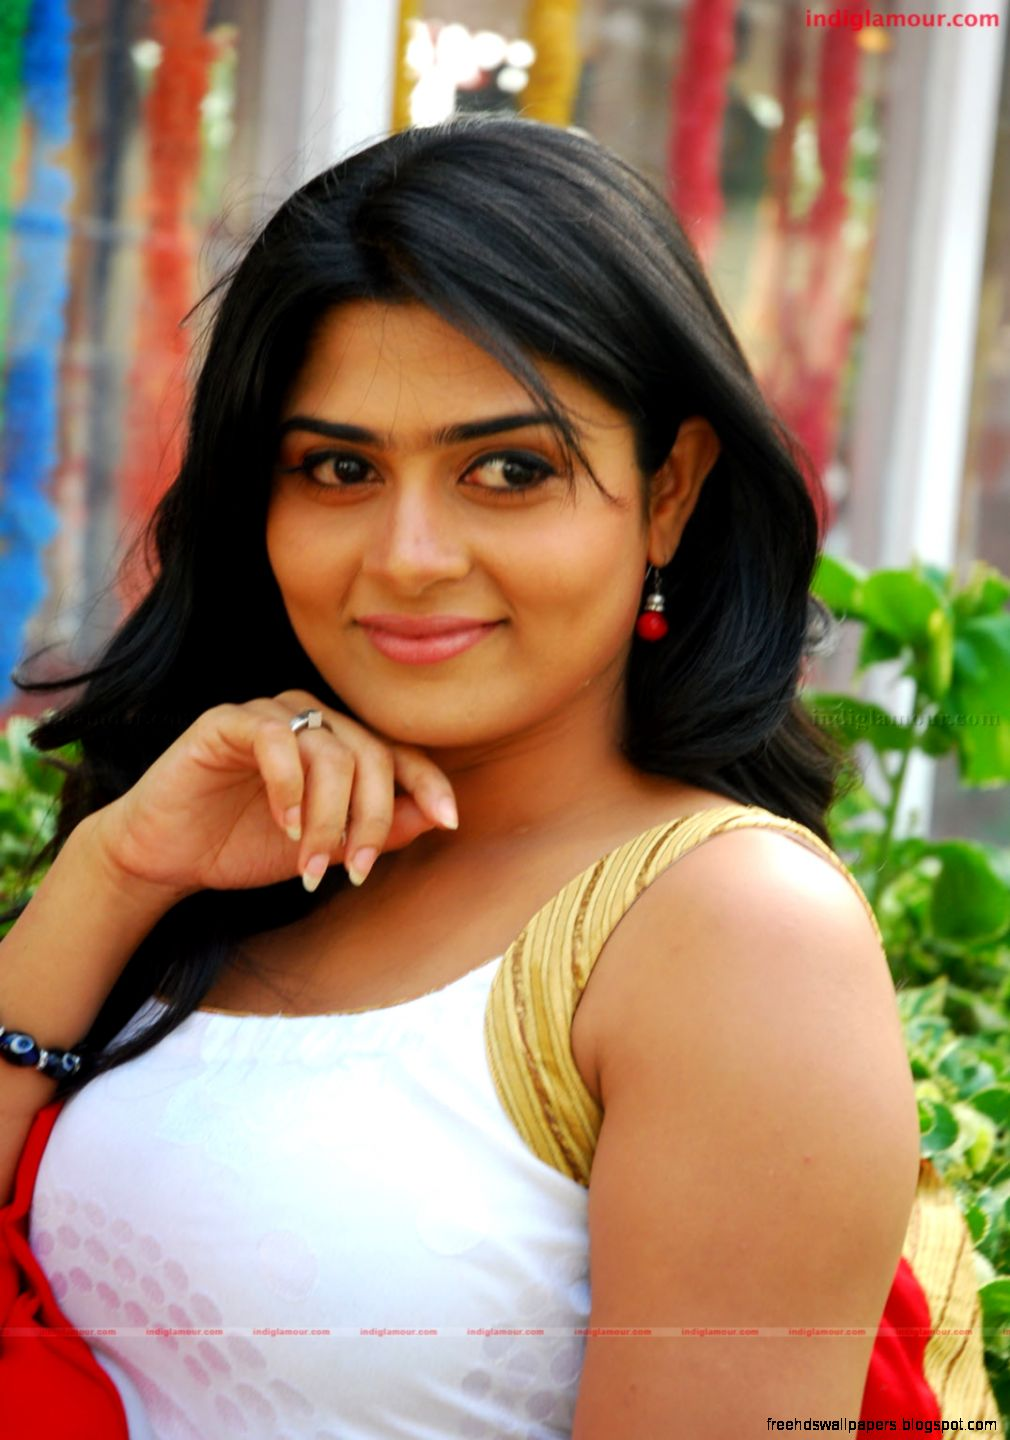 telugu actress hd wallpapers | free hd wallpapers